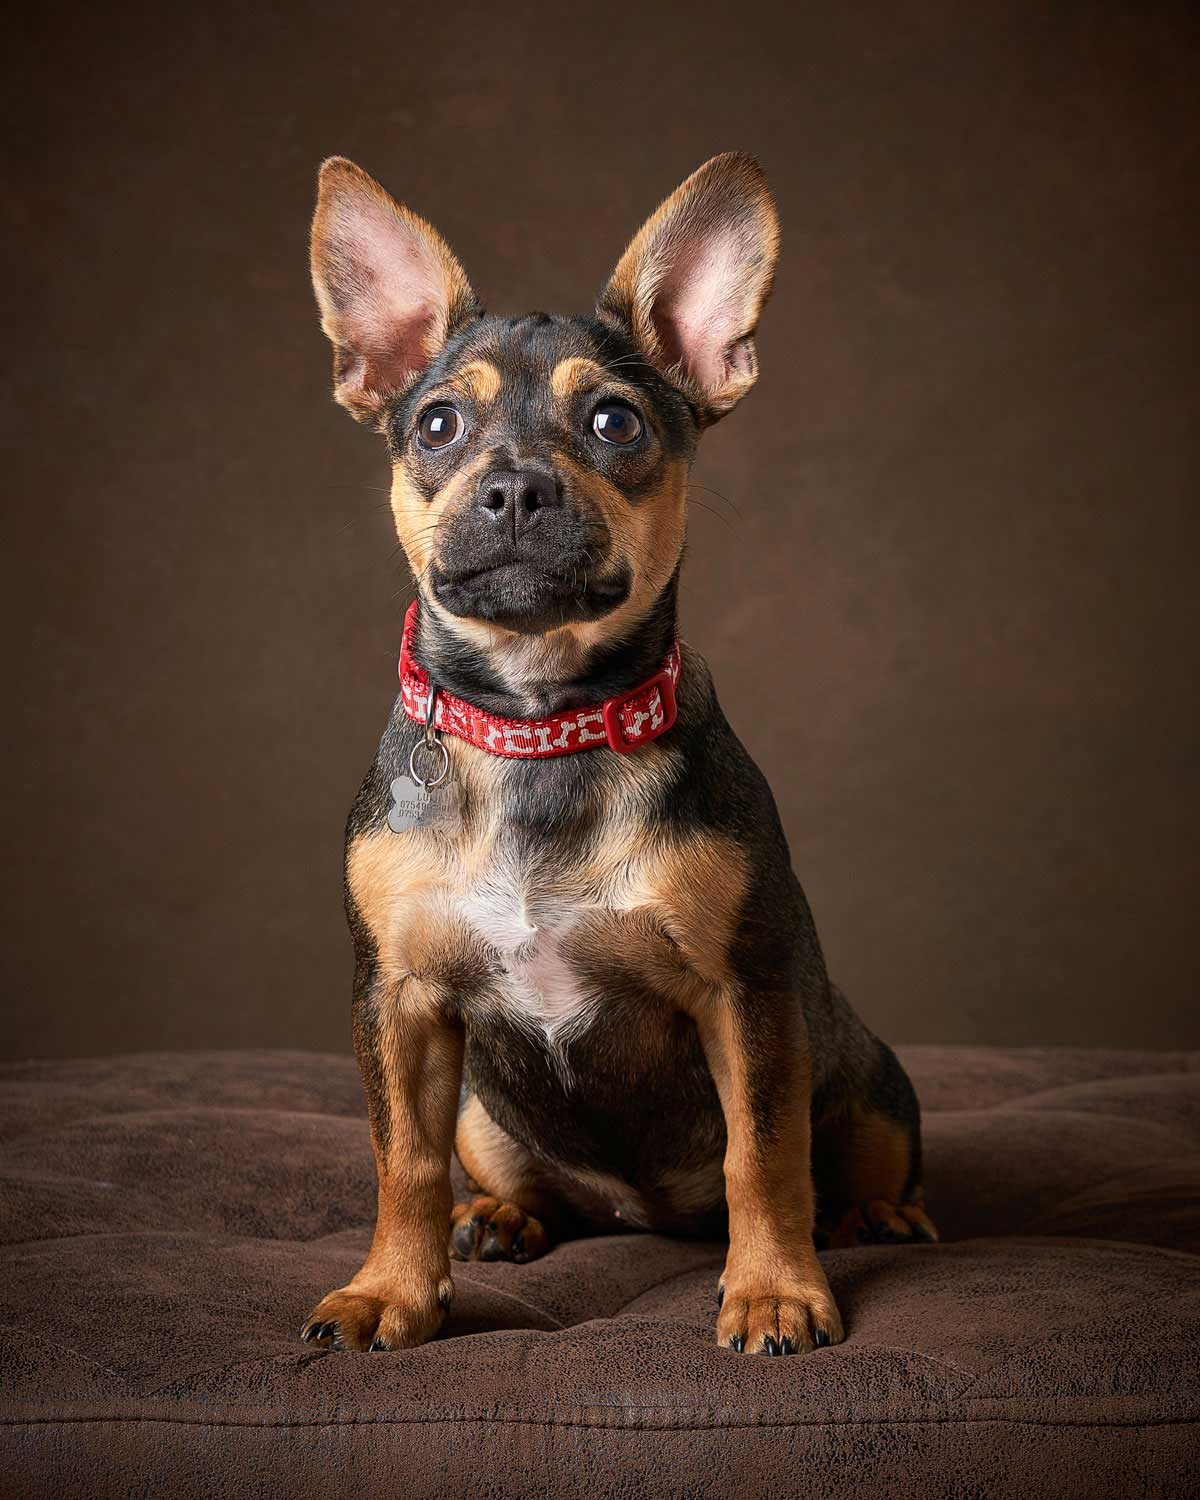 Dog Portrait Studio Photography 0011